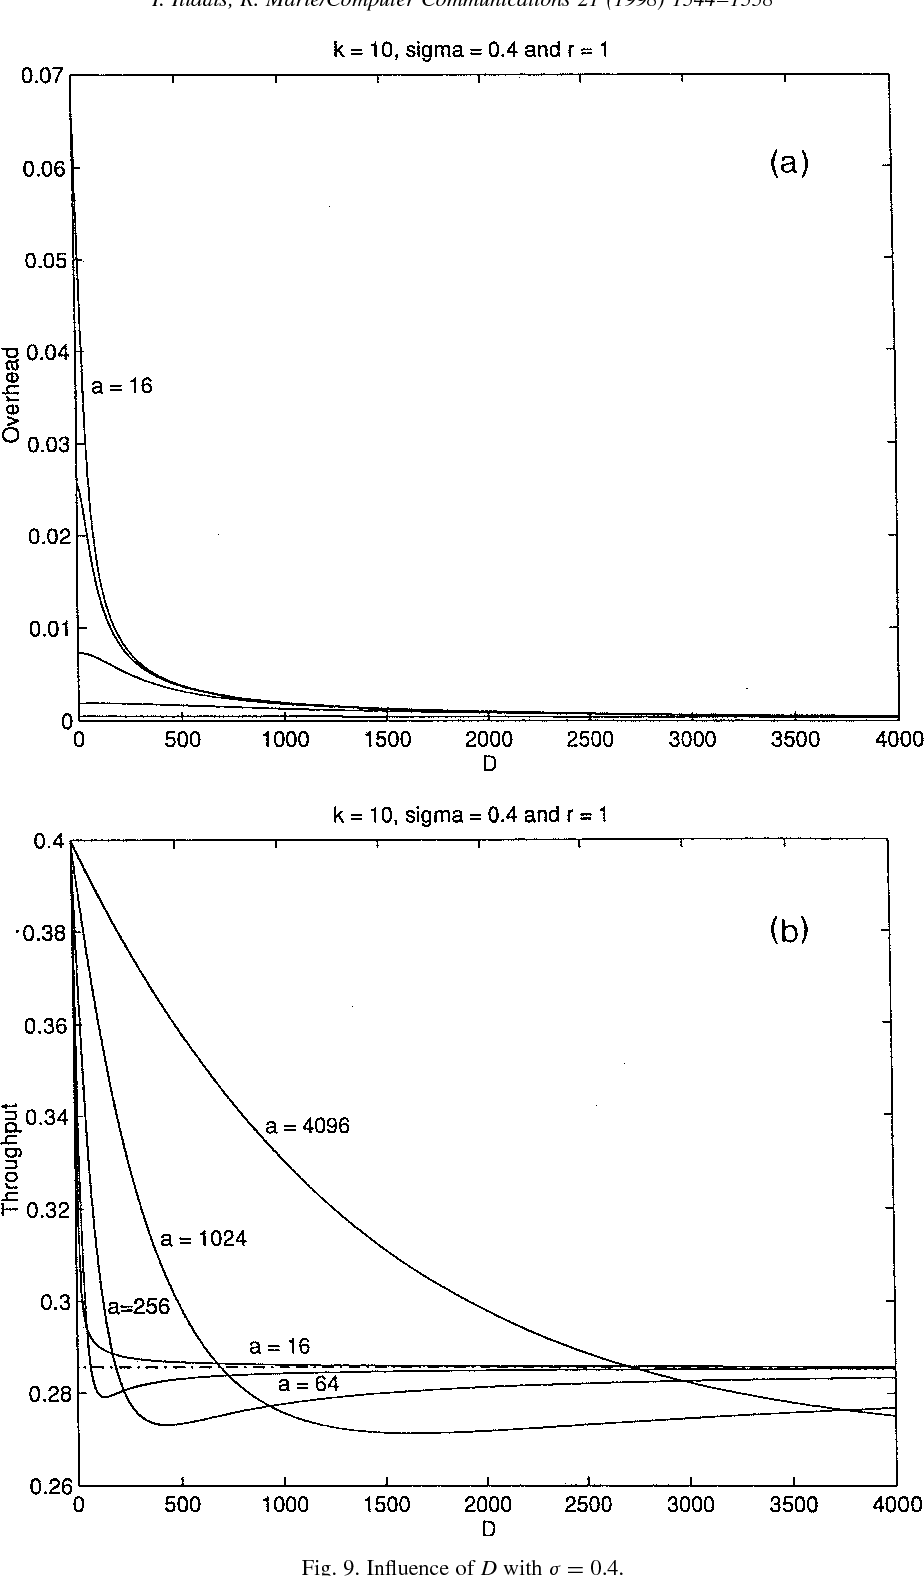 Fig. 9. Influence of D with j ¼ 0.4.